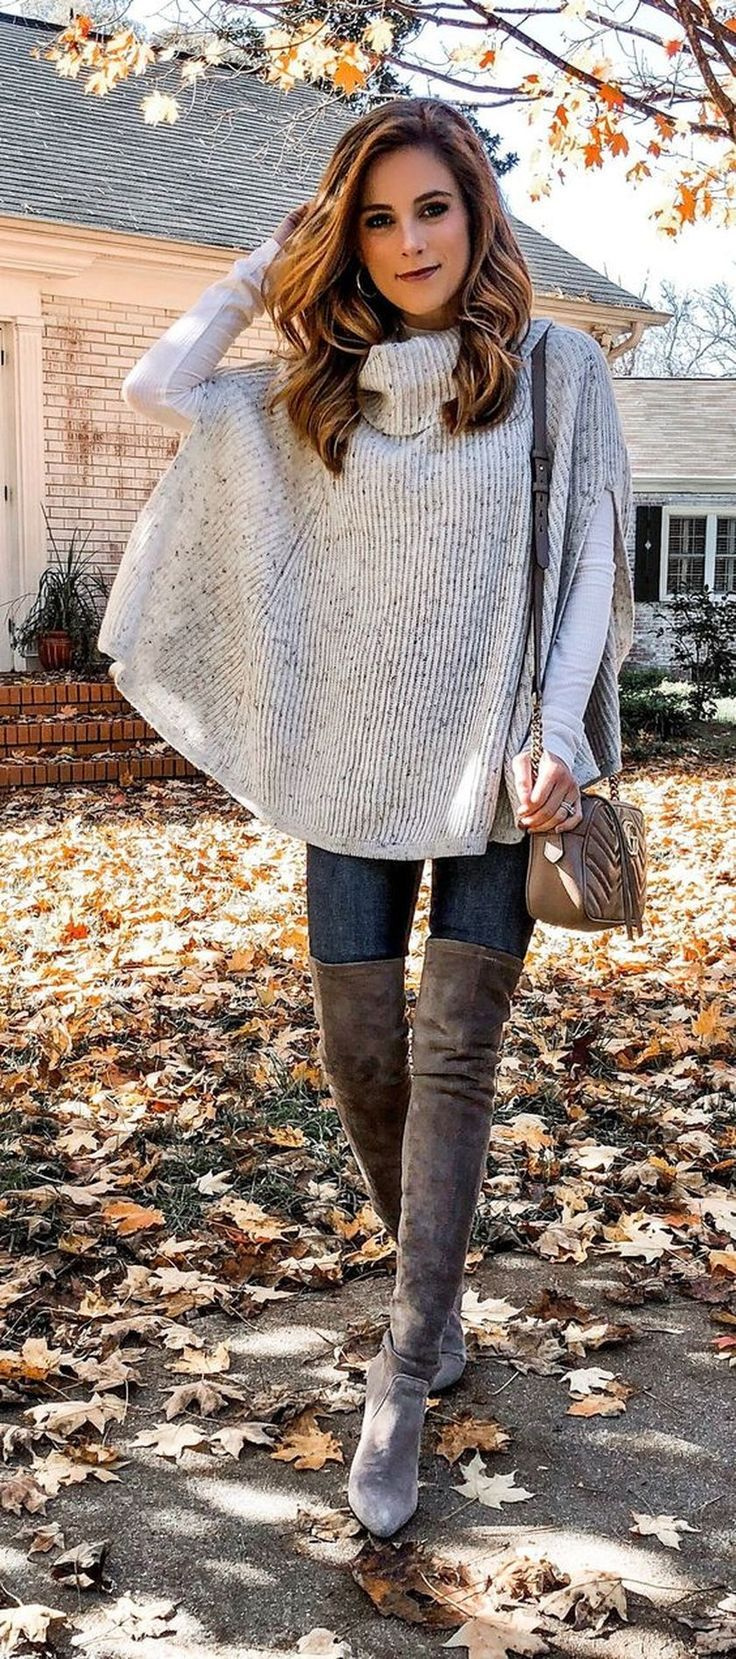 25 Breathtaking Fall Outfits To Look Fantastic – Hair Makeup & Clothes